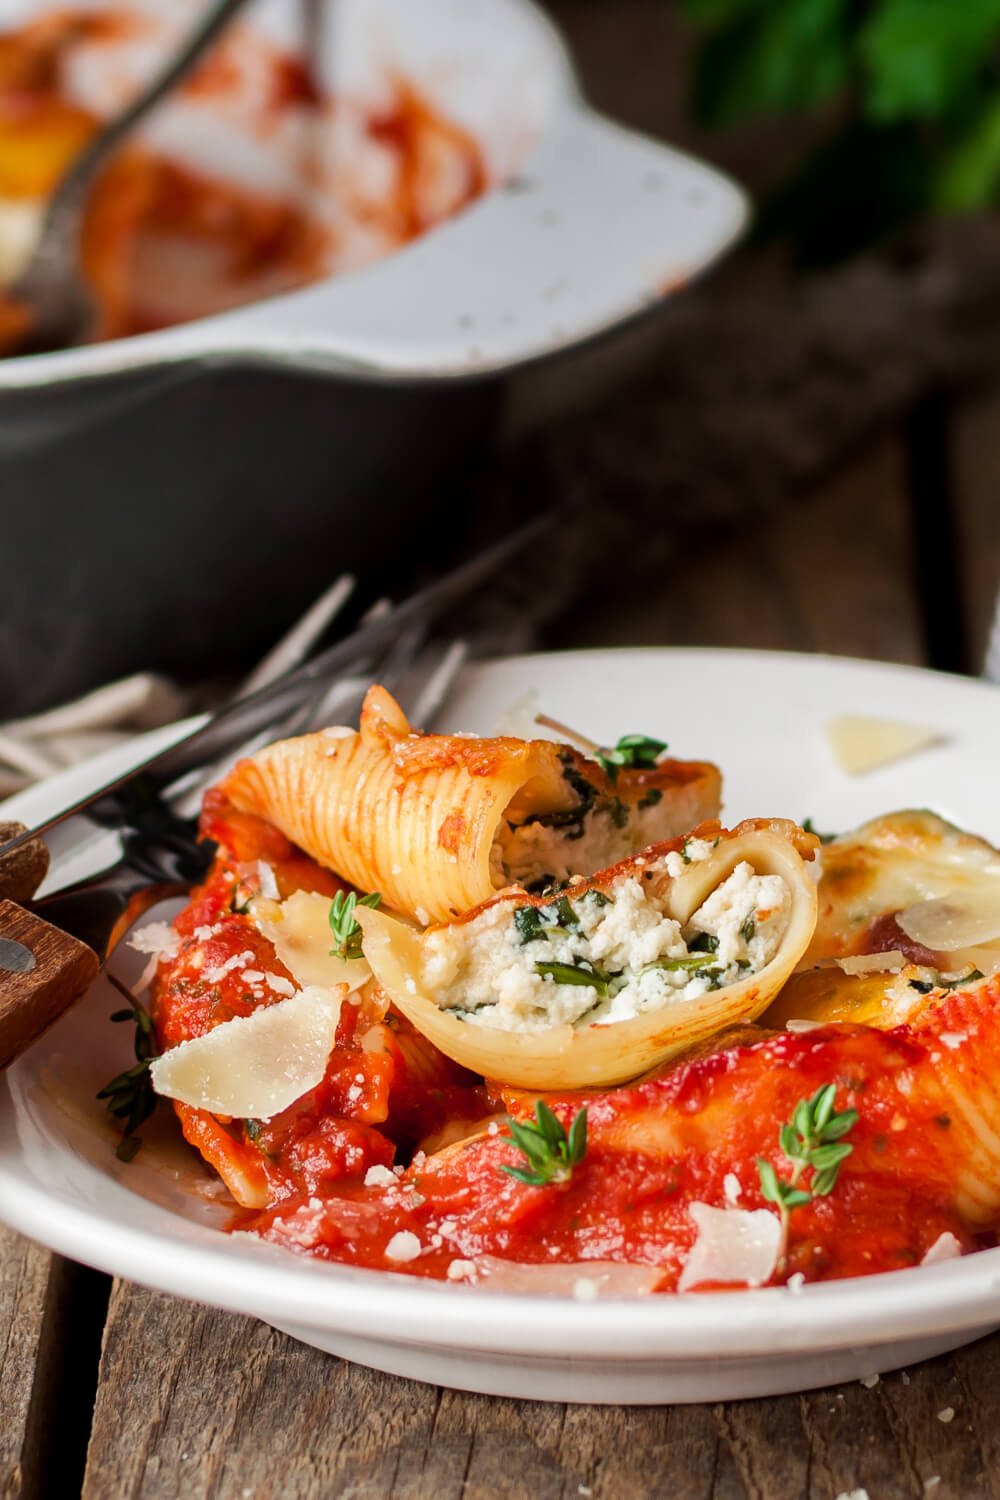 Cheese stuffed shells recipe with marinara sauce served in a bowl. One of the dishes I love to serve to both family and friends. It is always a hit.